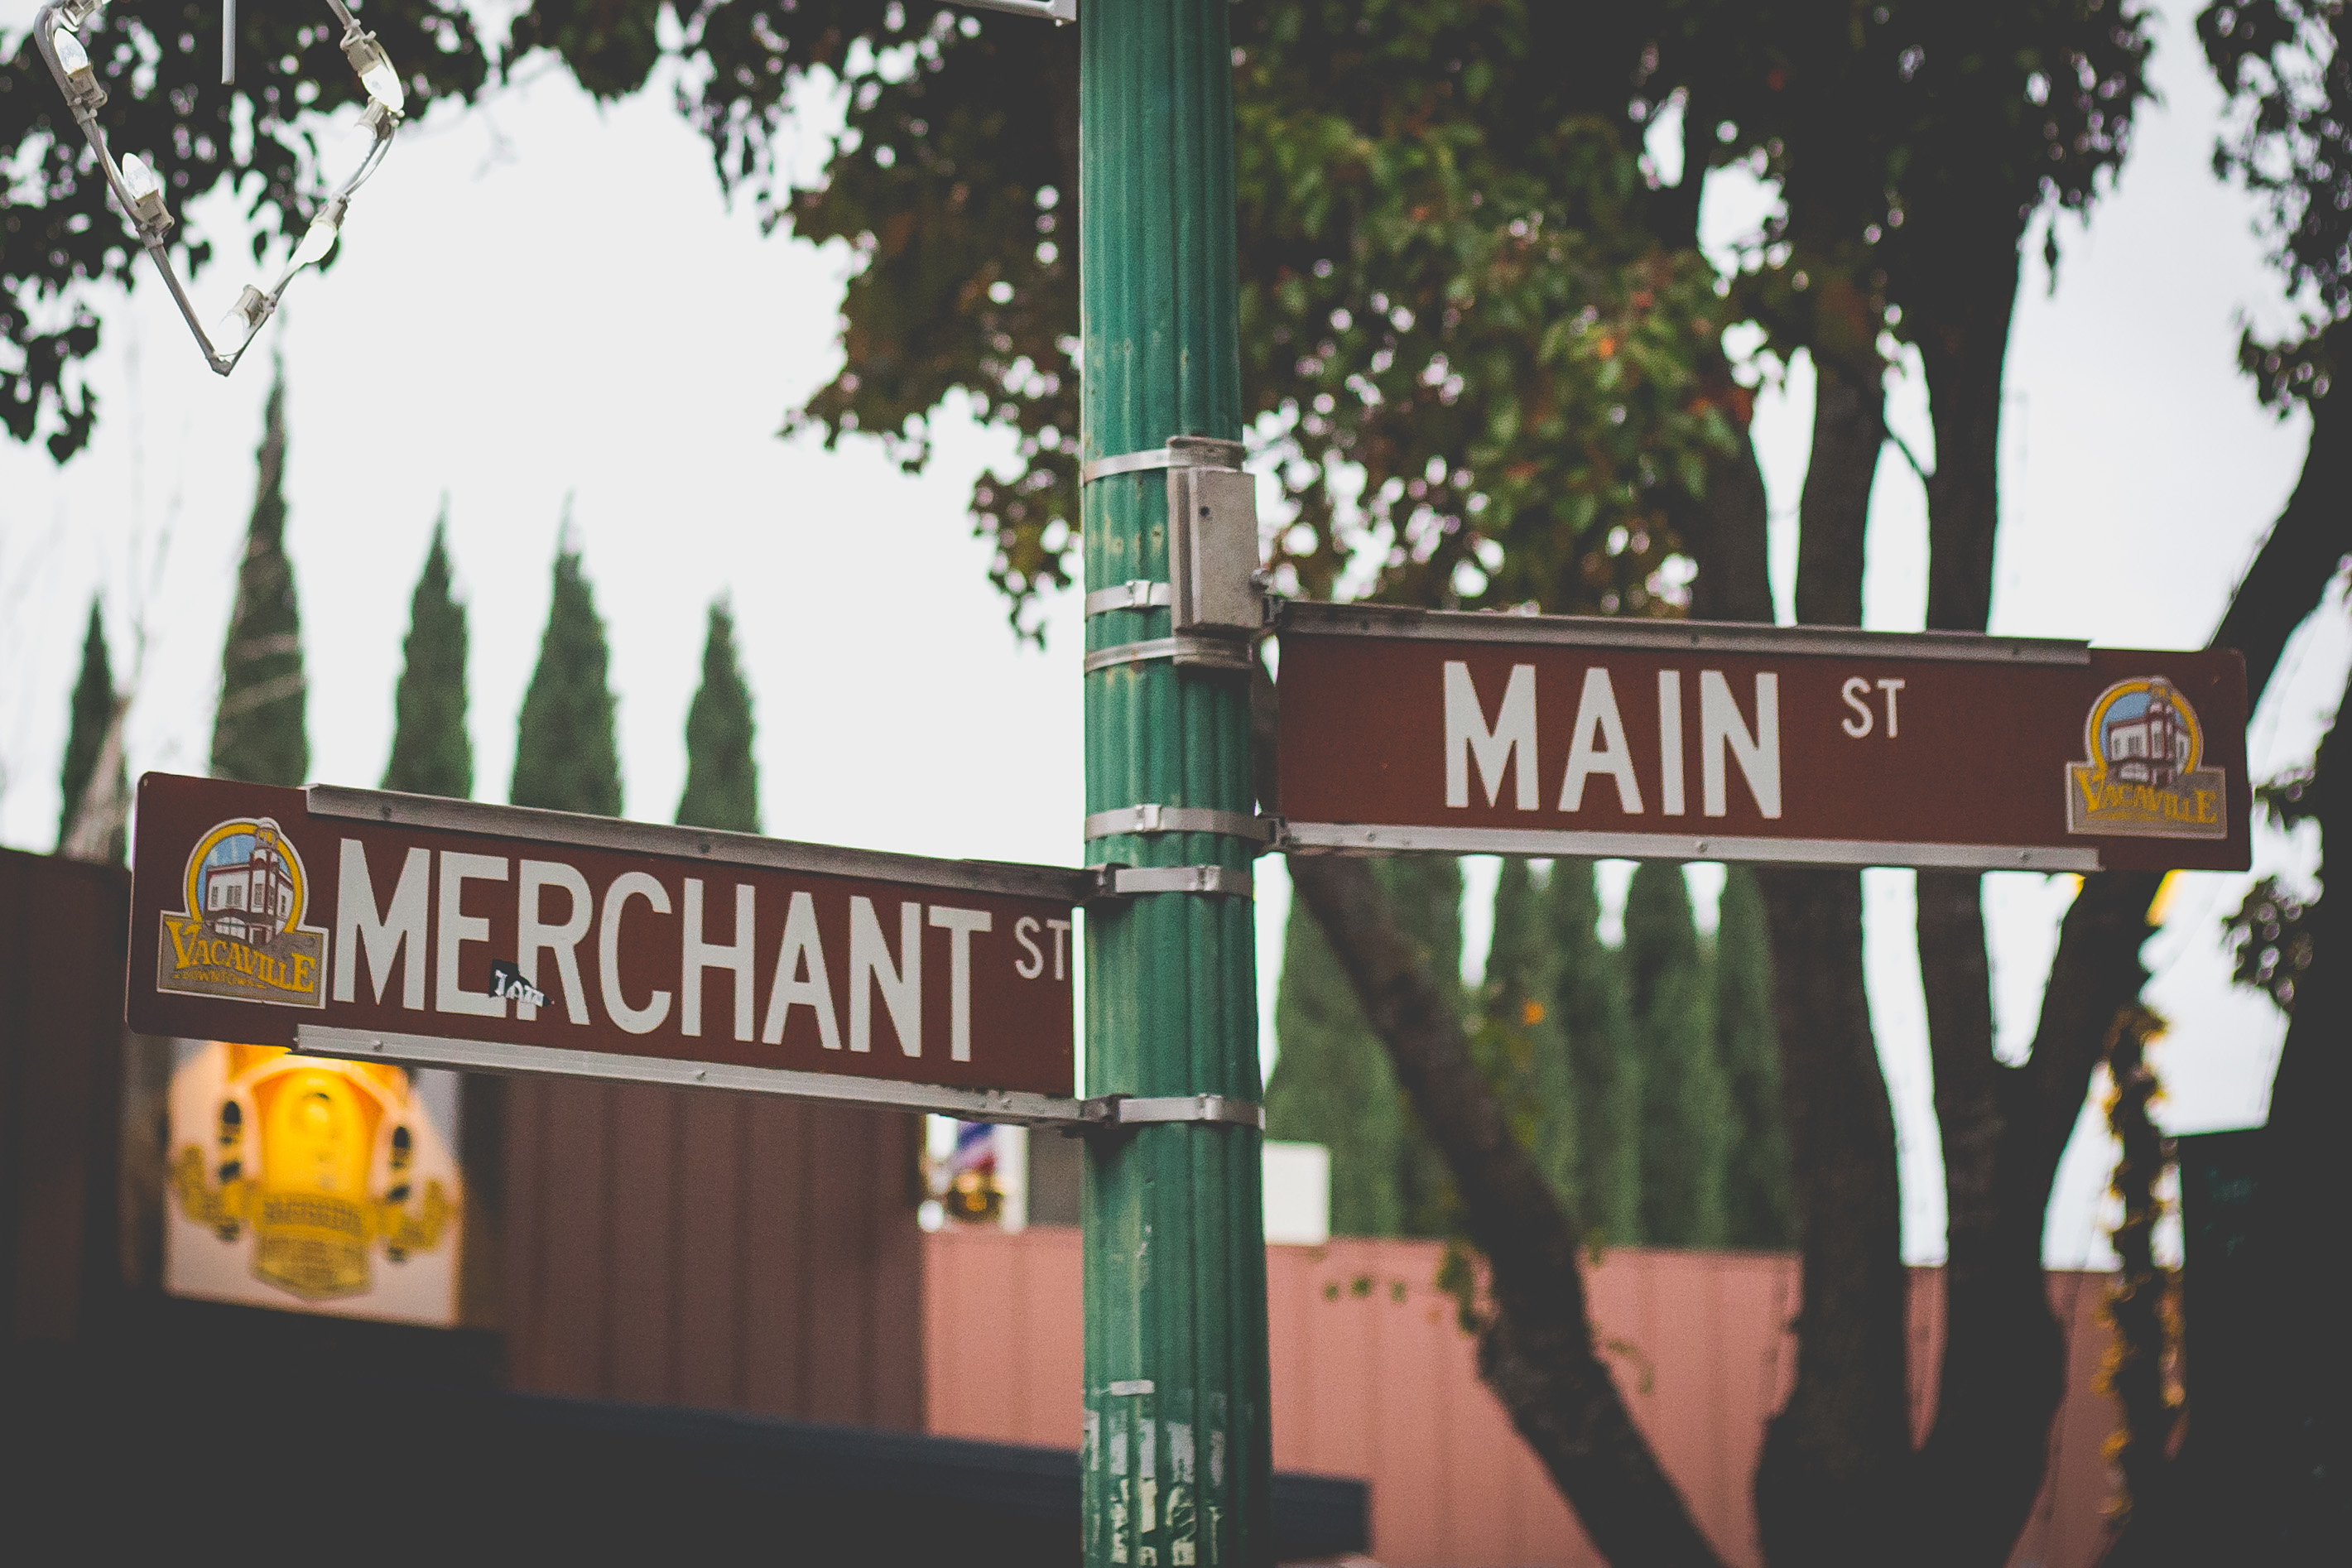 Downtown Vacaville - Merchant and Main